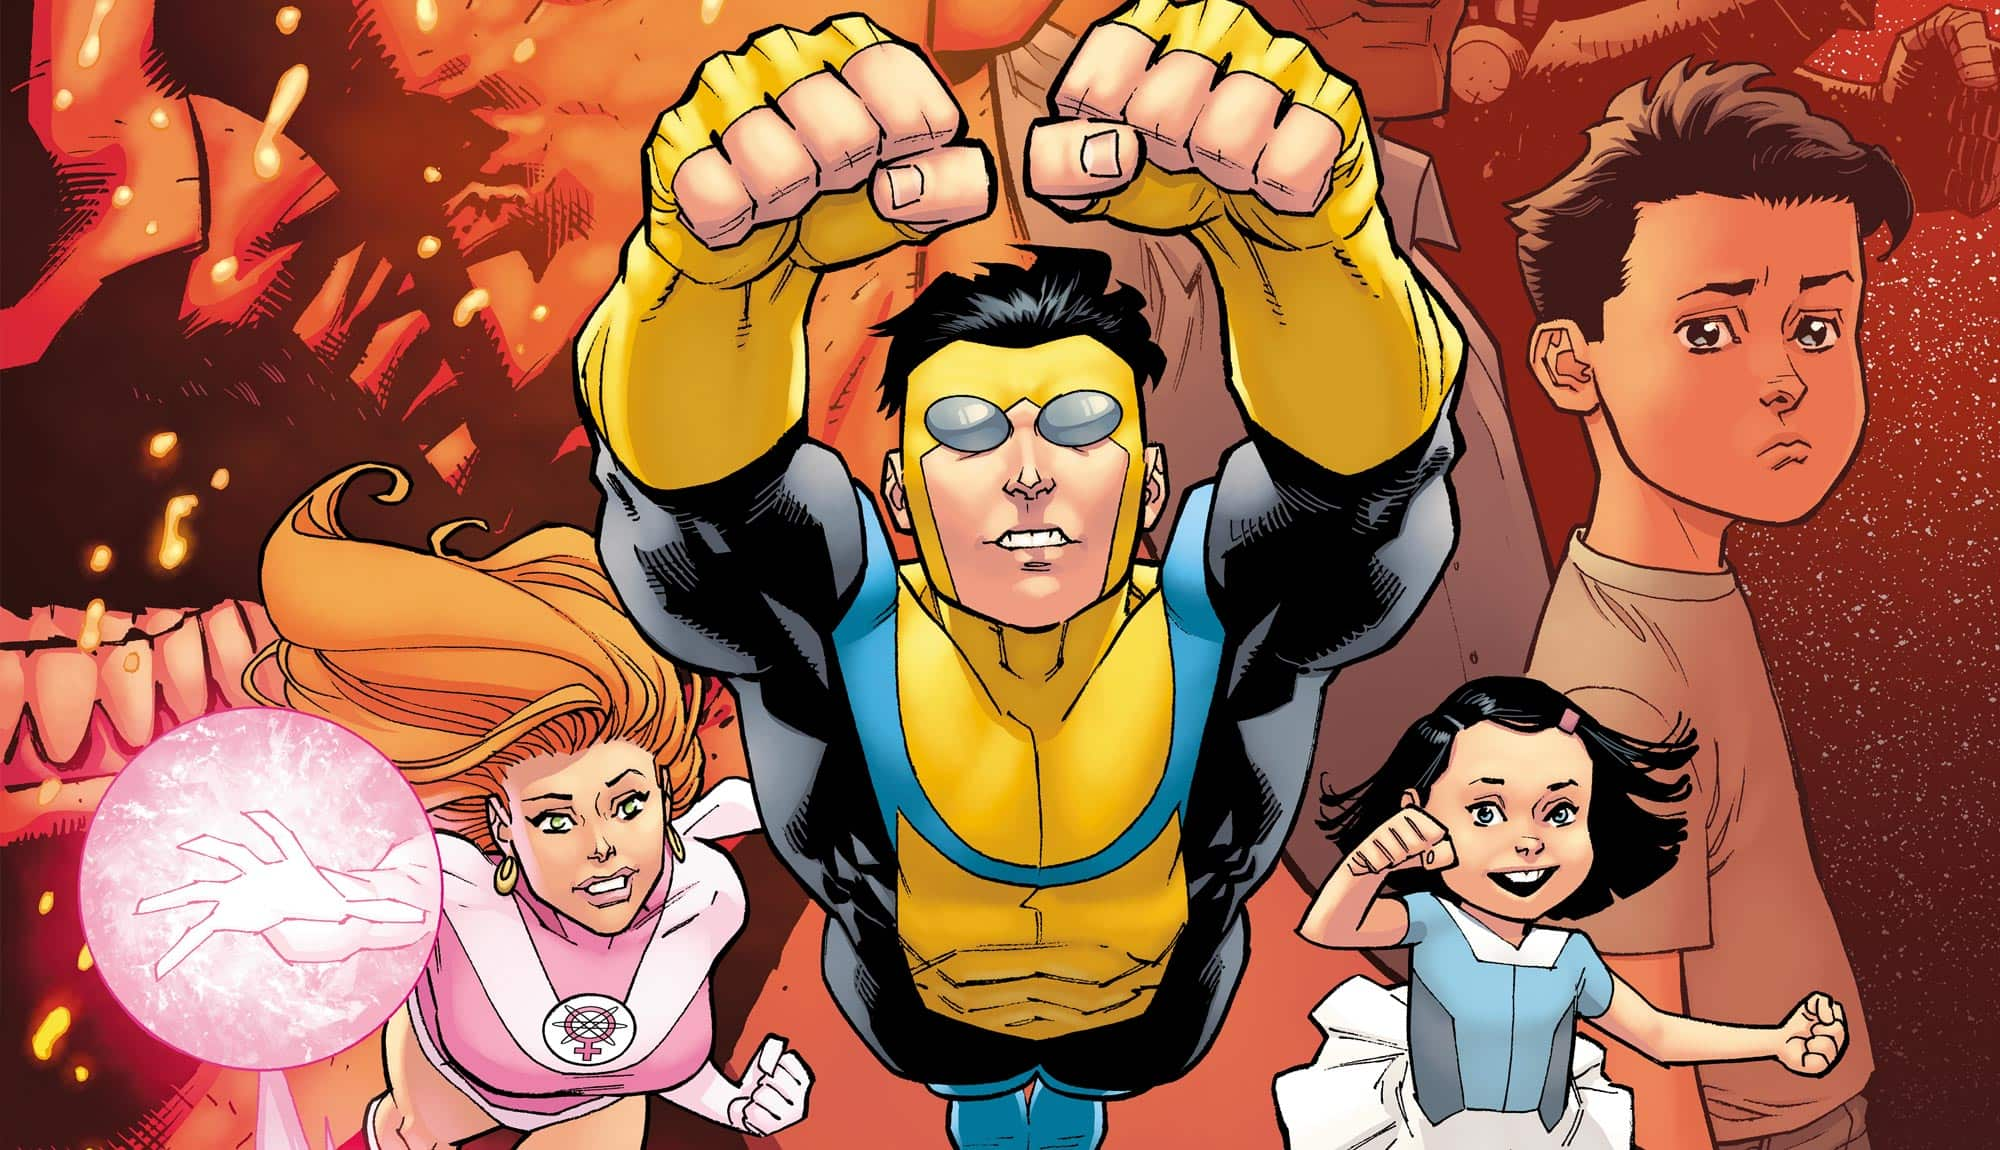 Invincible - Comic, Animated Series, Movie, and More! - Skybound ...